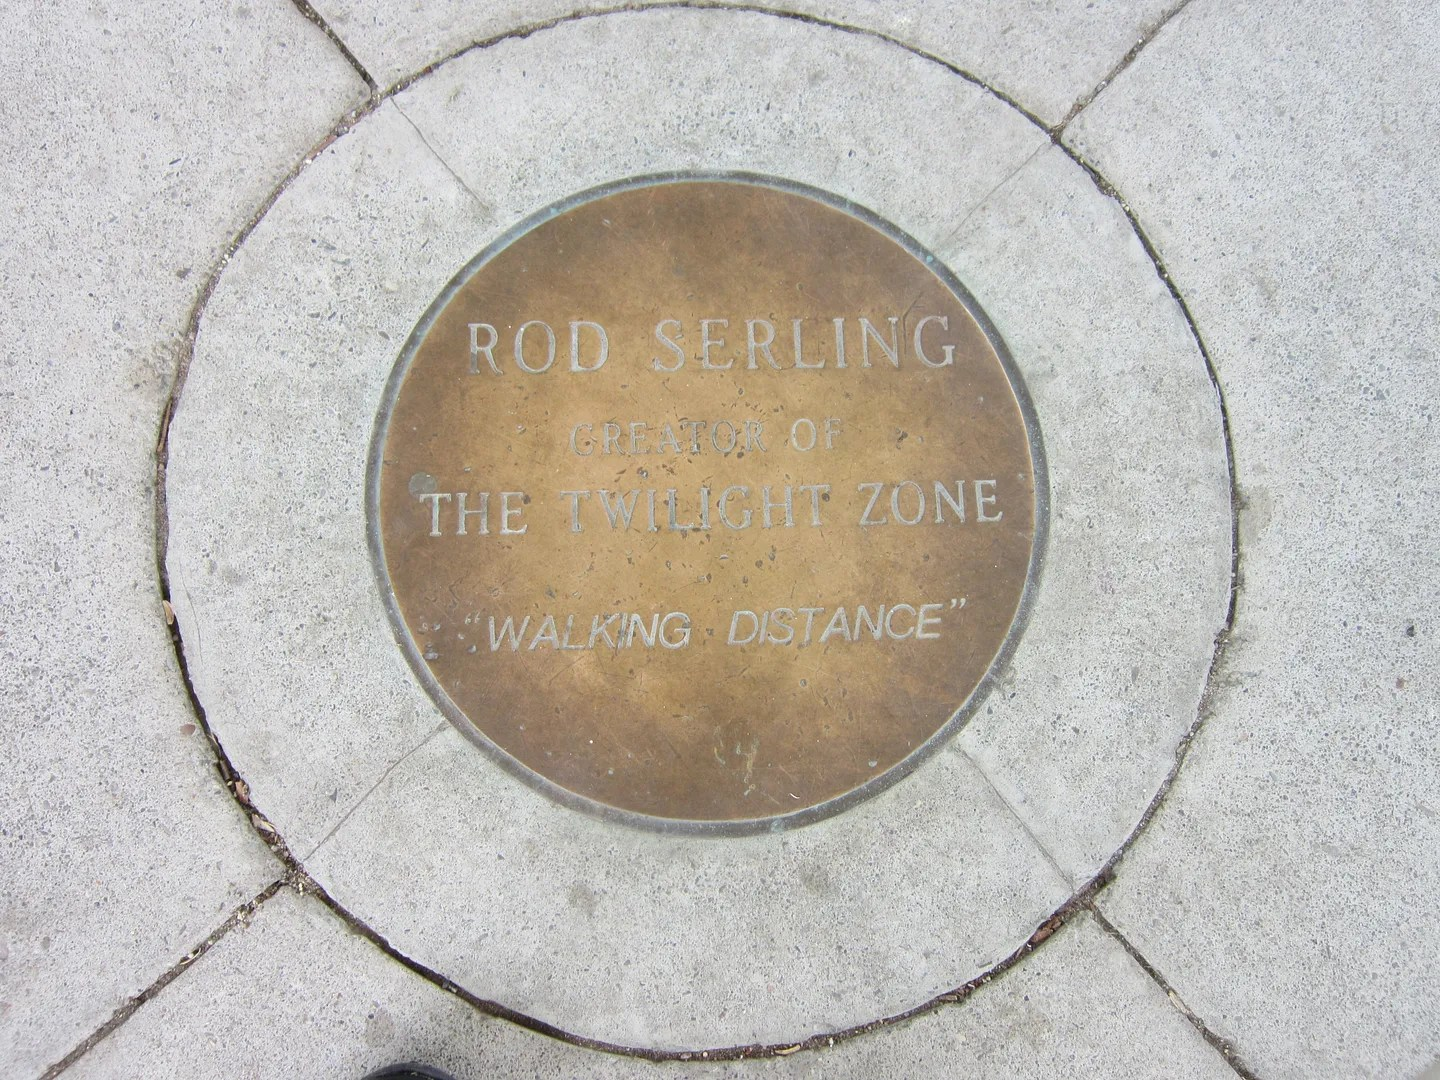 Twilight Zone Rod Serling pavilion plaque, Binghamton